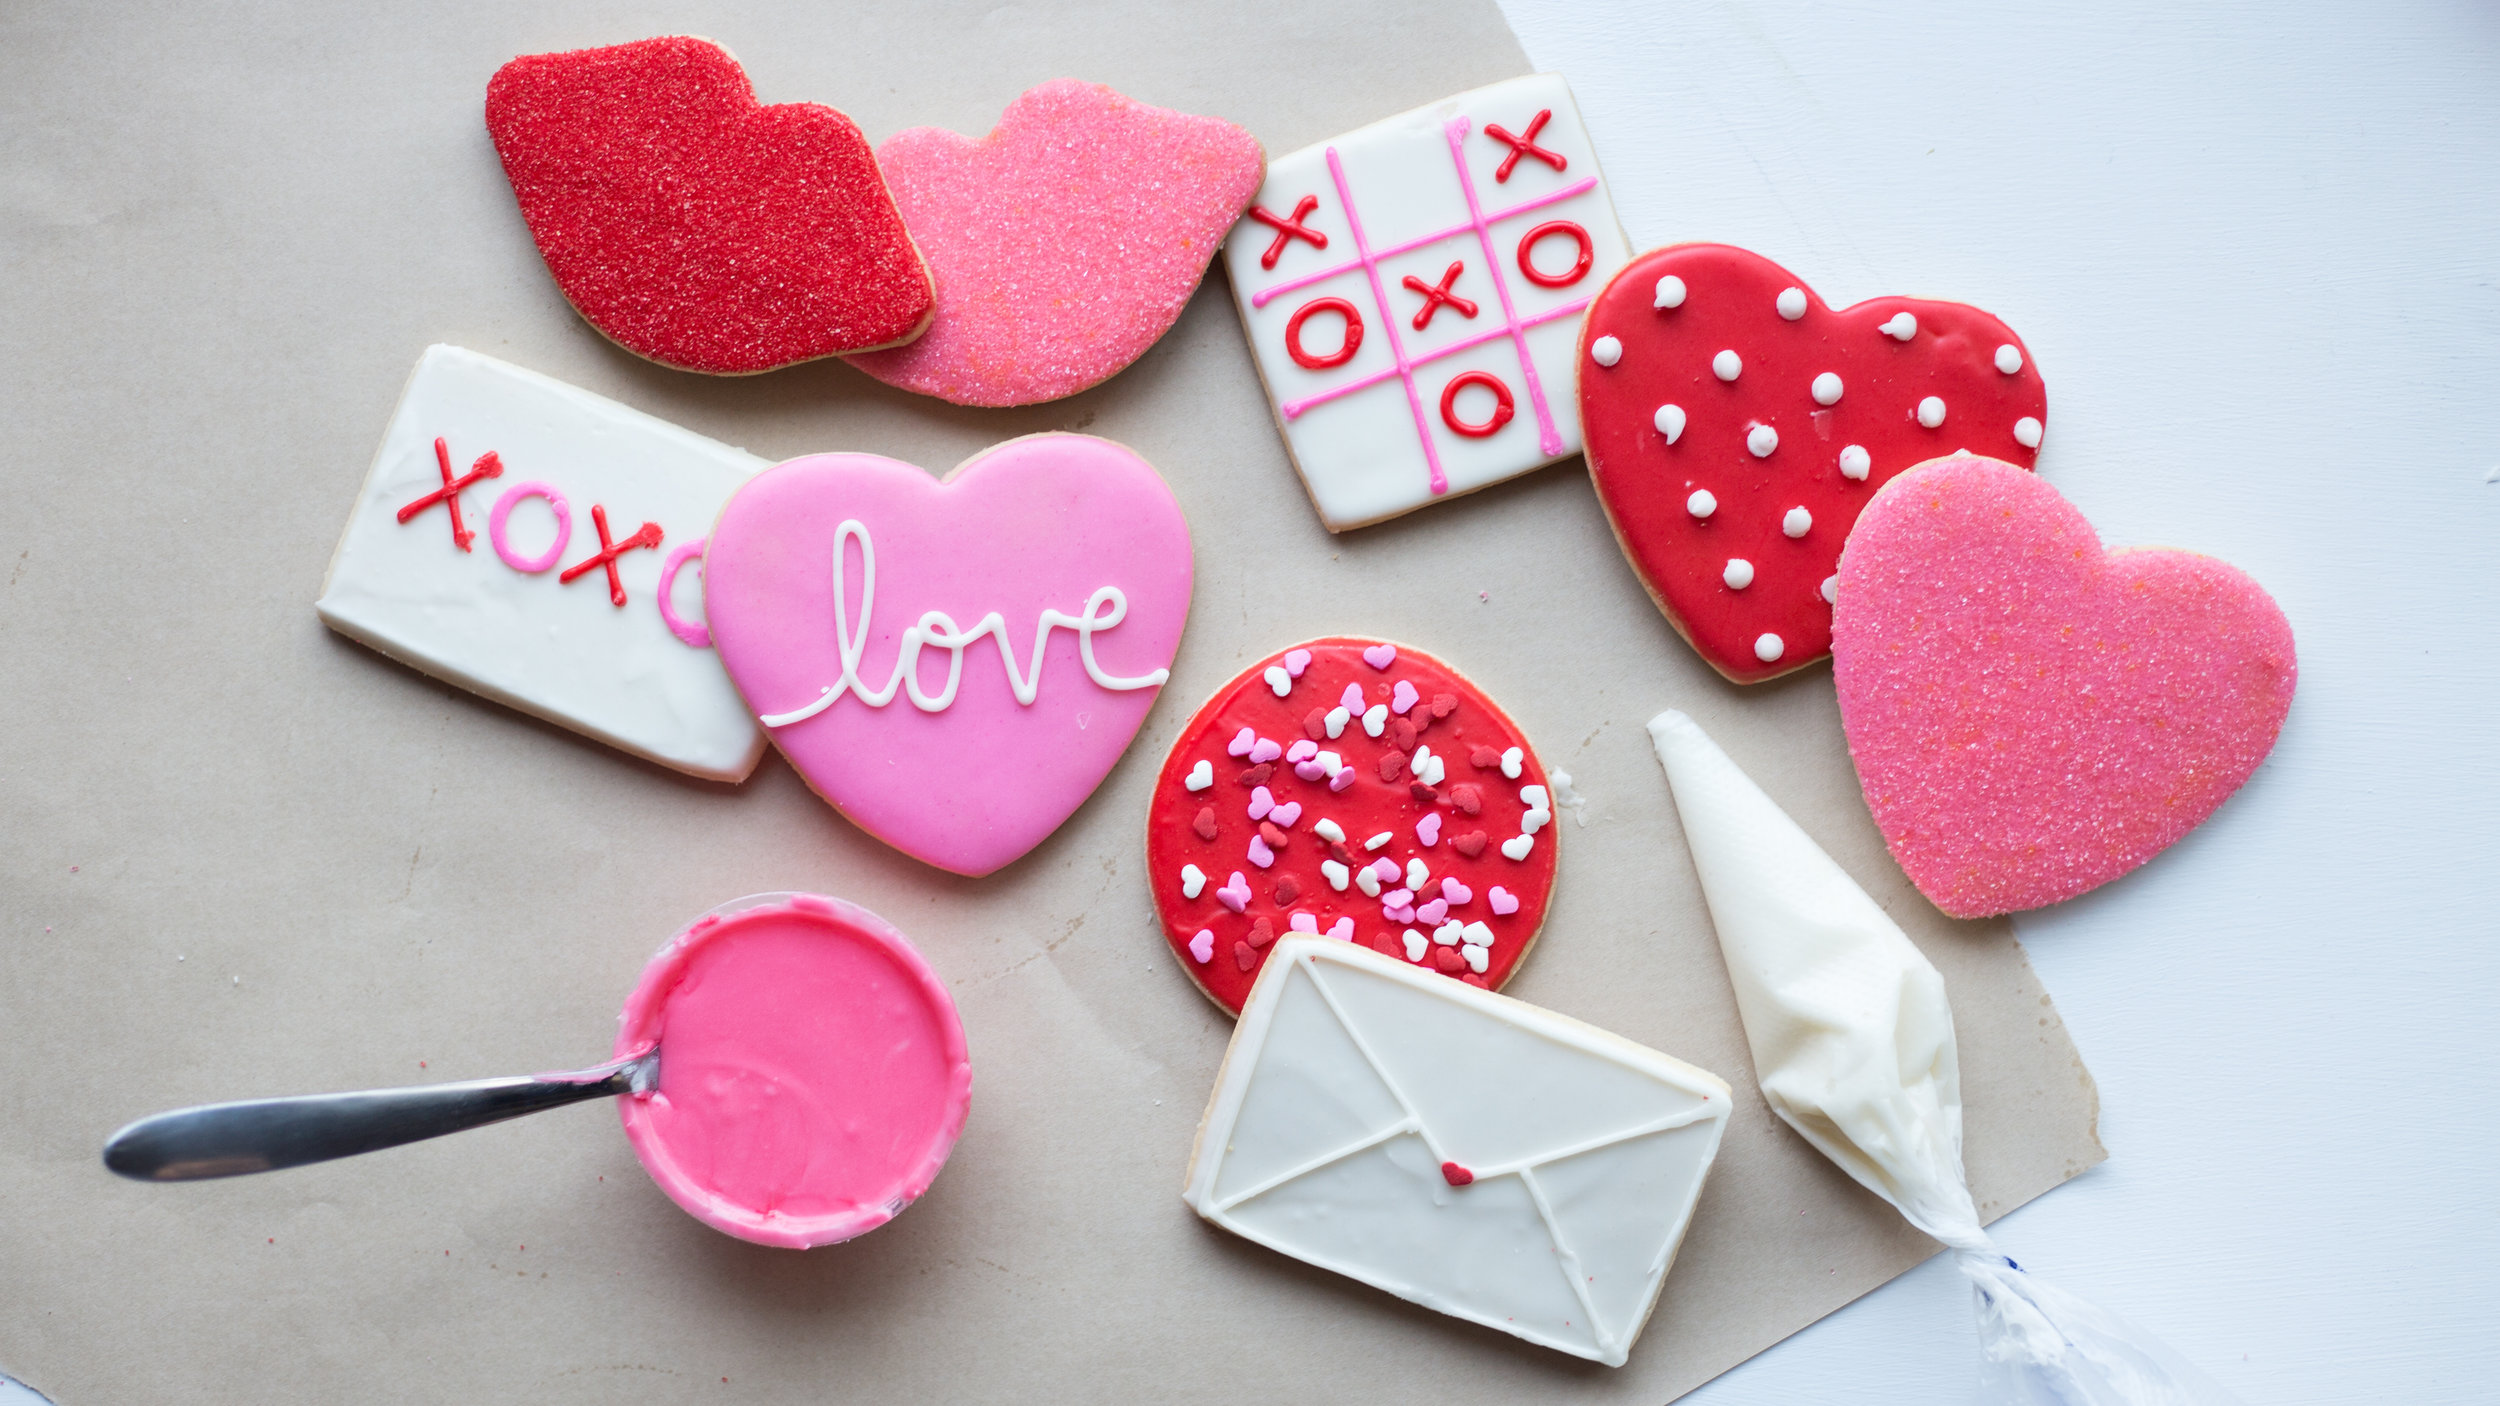 Vday Cookie Kit 16x9-1.jpg